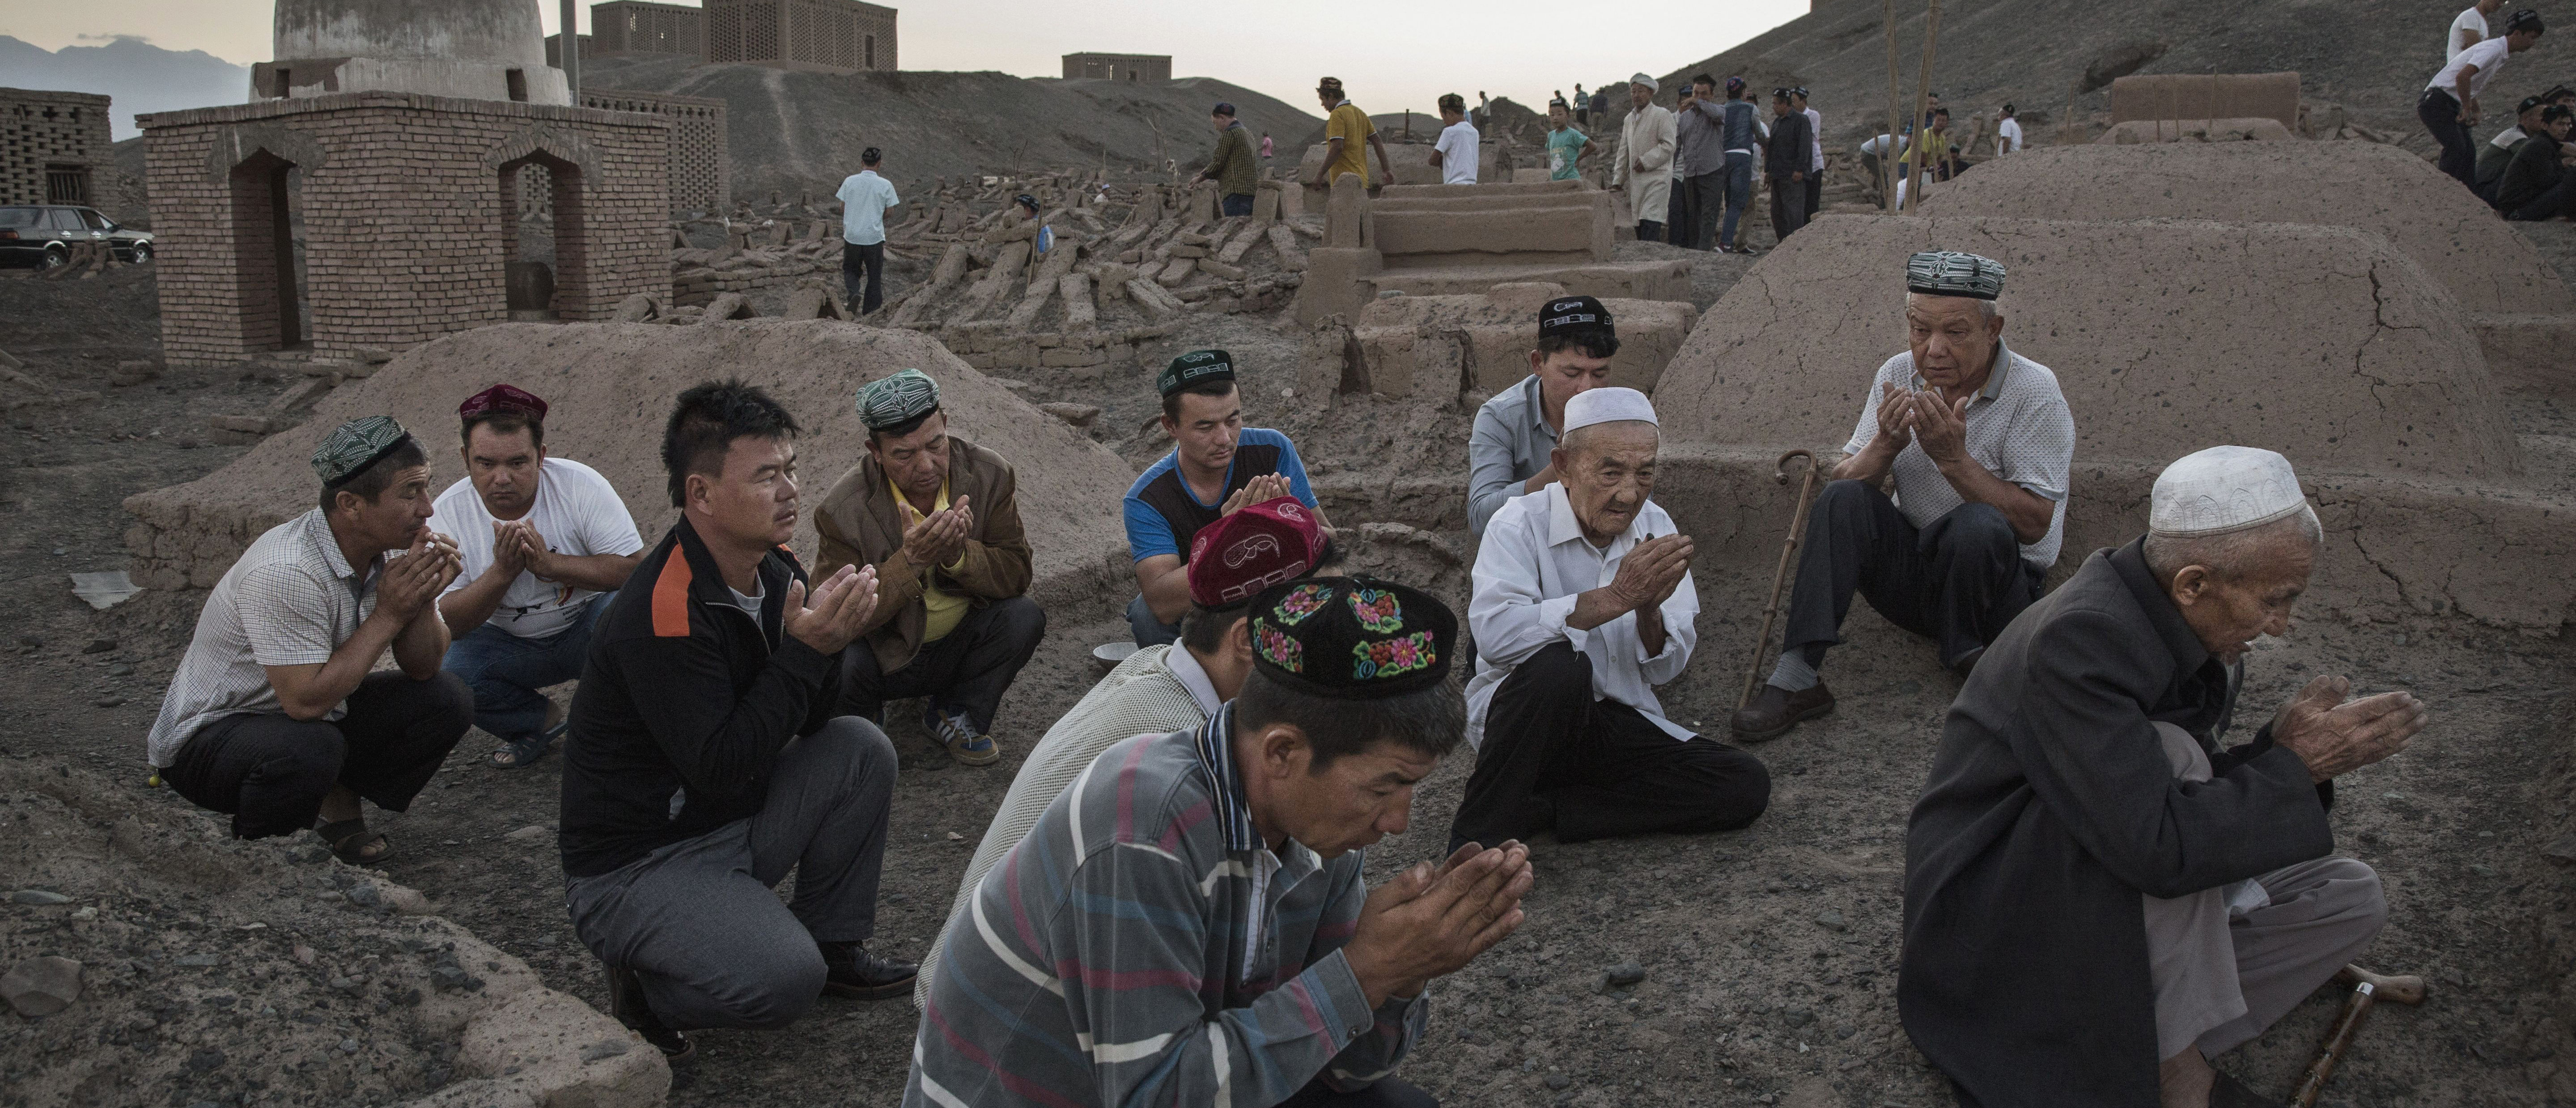 TURPAN, CHINA - SEPTEMBER 11: (CHINA OUT) Uyghur men perform prayers for ancestors at a cemetery before the Corban Festival on September 11, 2016 in Turpan County, in the far western Xinjiang province, China. The Corban festival, known to Muslims worldwide as Eid al-Adha or 'feast of the sacrifice', is celebrated by ethnic Uyghurs across Xinjiang, the far-western region of China bordering Central Asia that is home to roughly half of the country's 23 million Muslims. (Photo by Kevin Frayer/Getty Images)